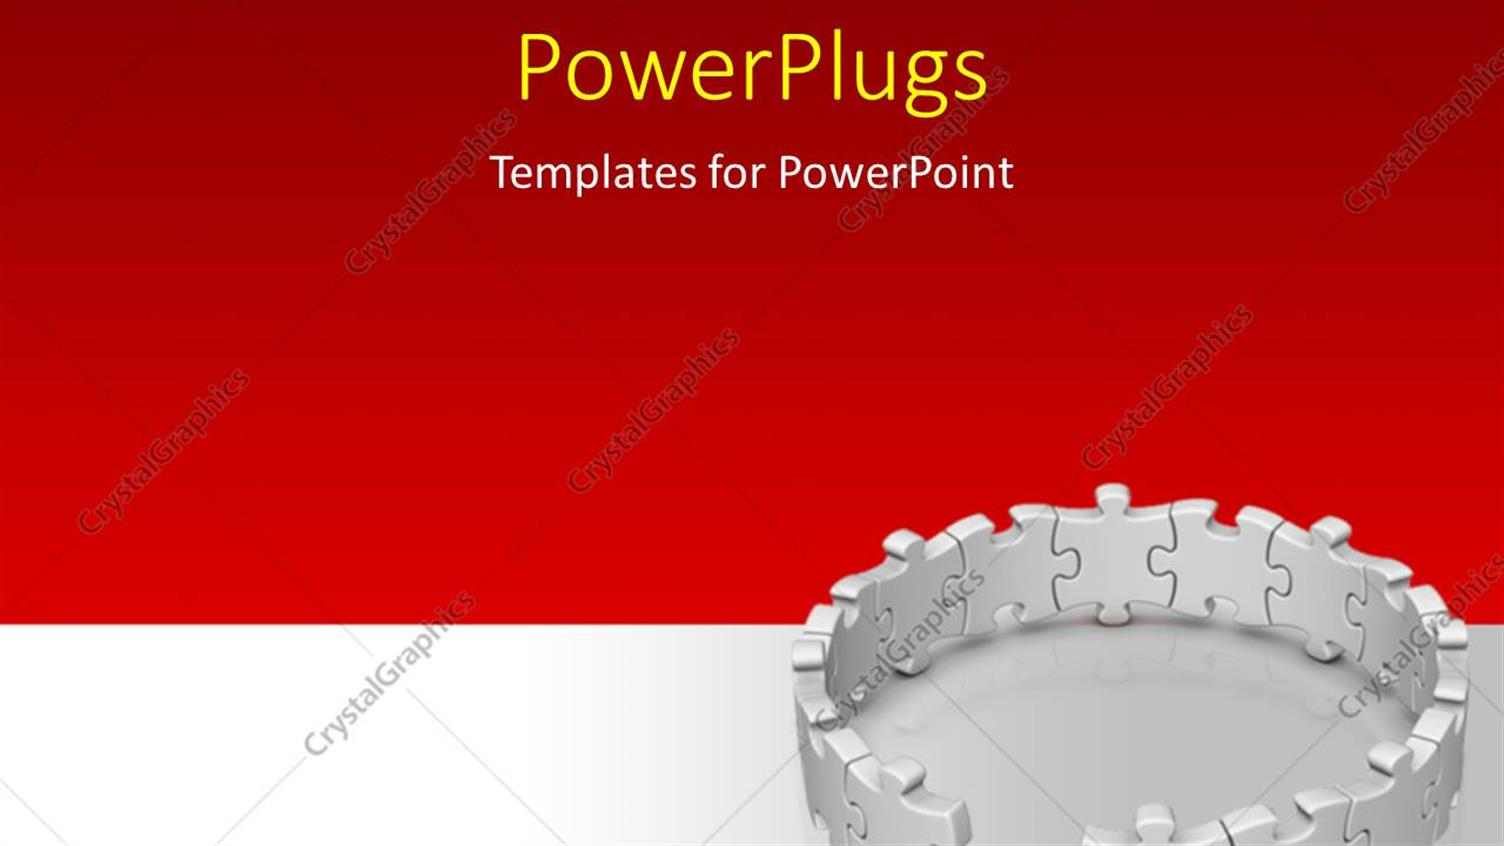 PowerPoint Template Displaying Gray Jigsaw Puzzles with One Red Piece on Floor Over Red and Grey Background